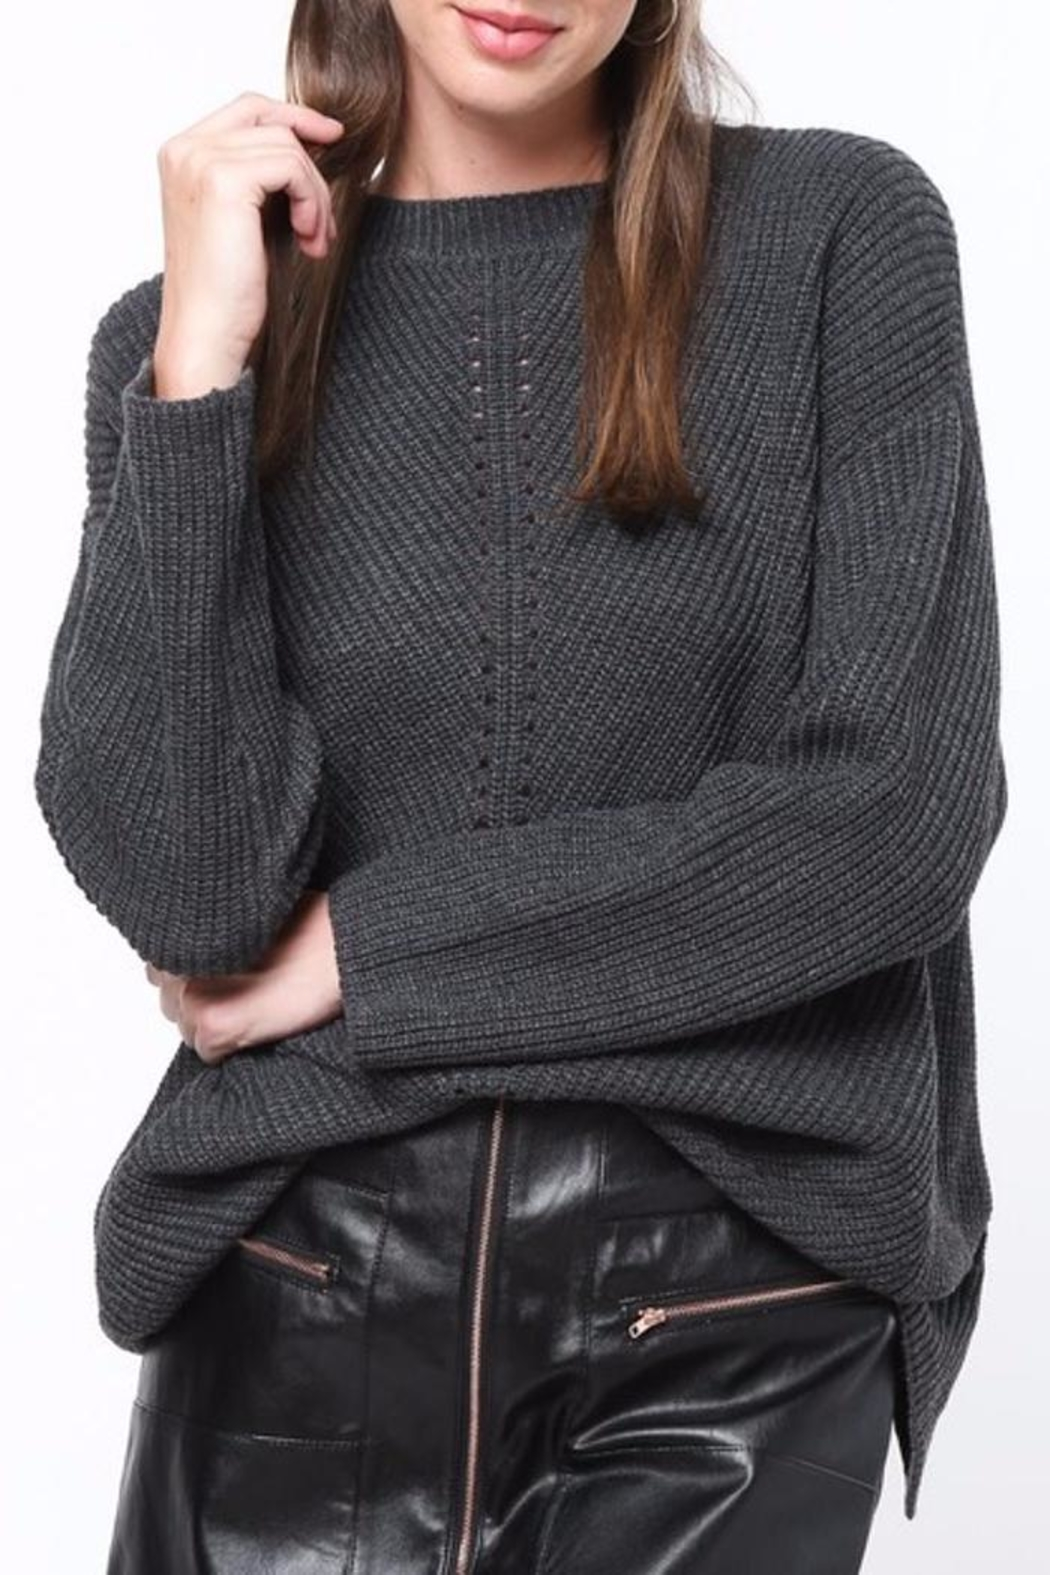 People Outfitter Siobhan's Sweater - Main Image